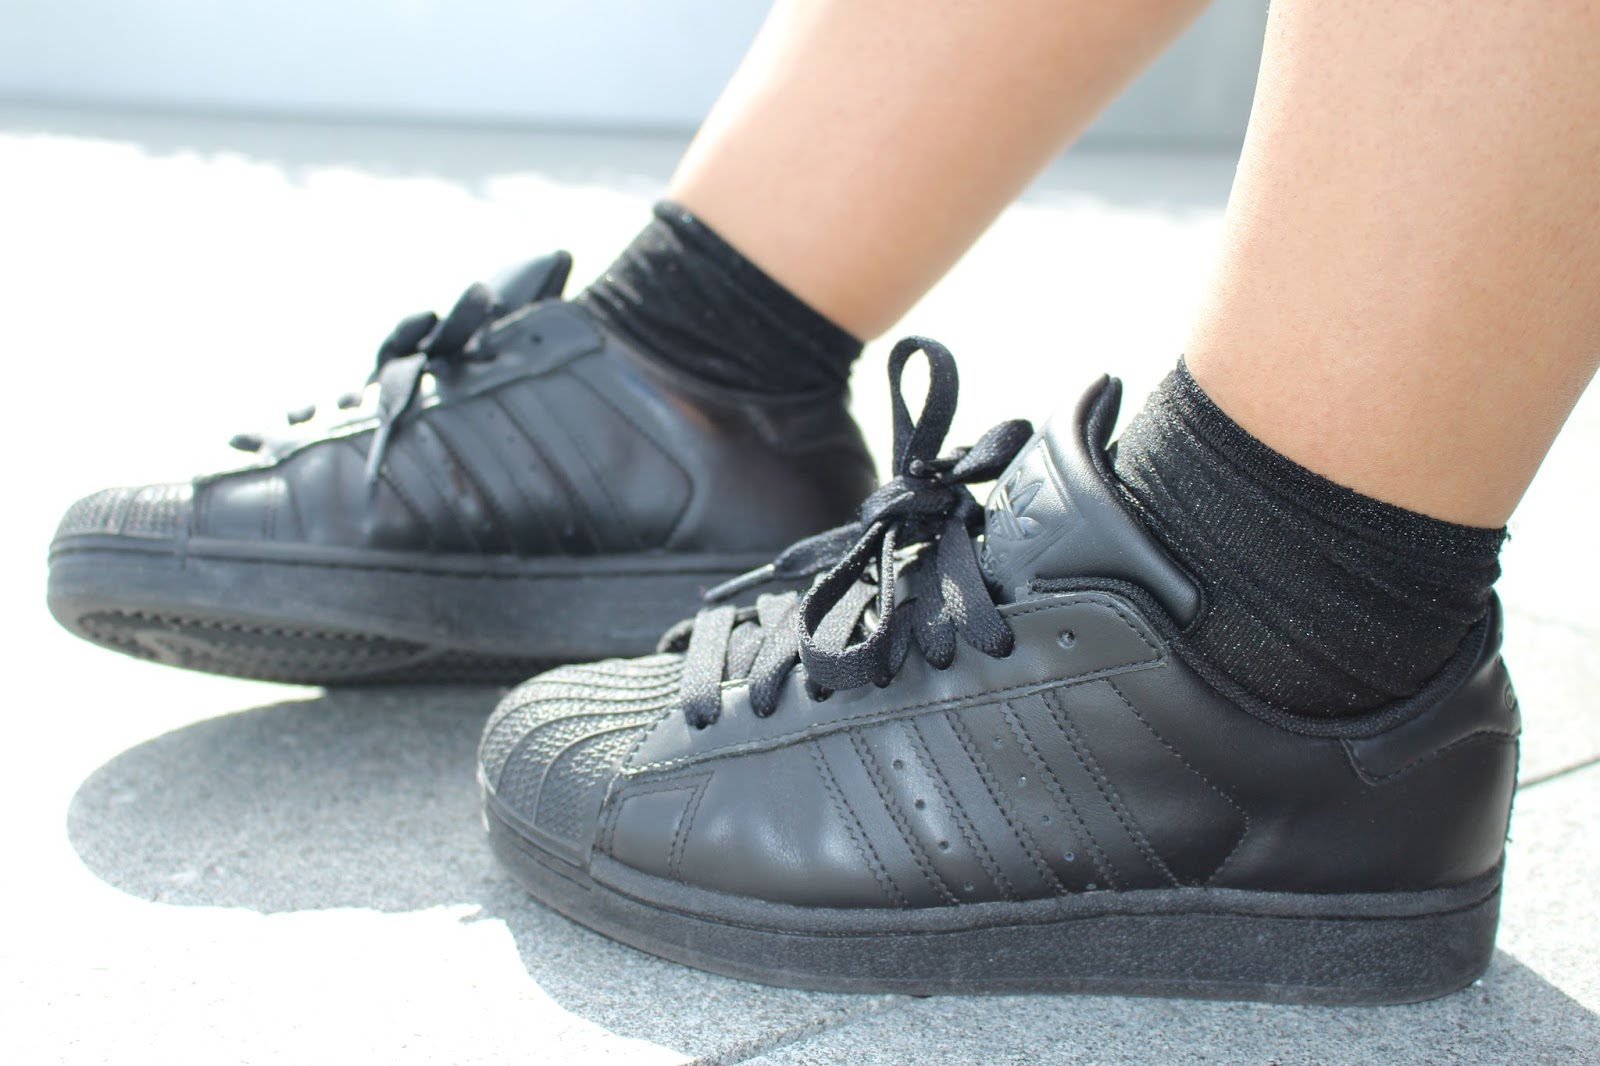 adidas superstars are ugly